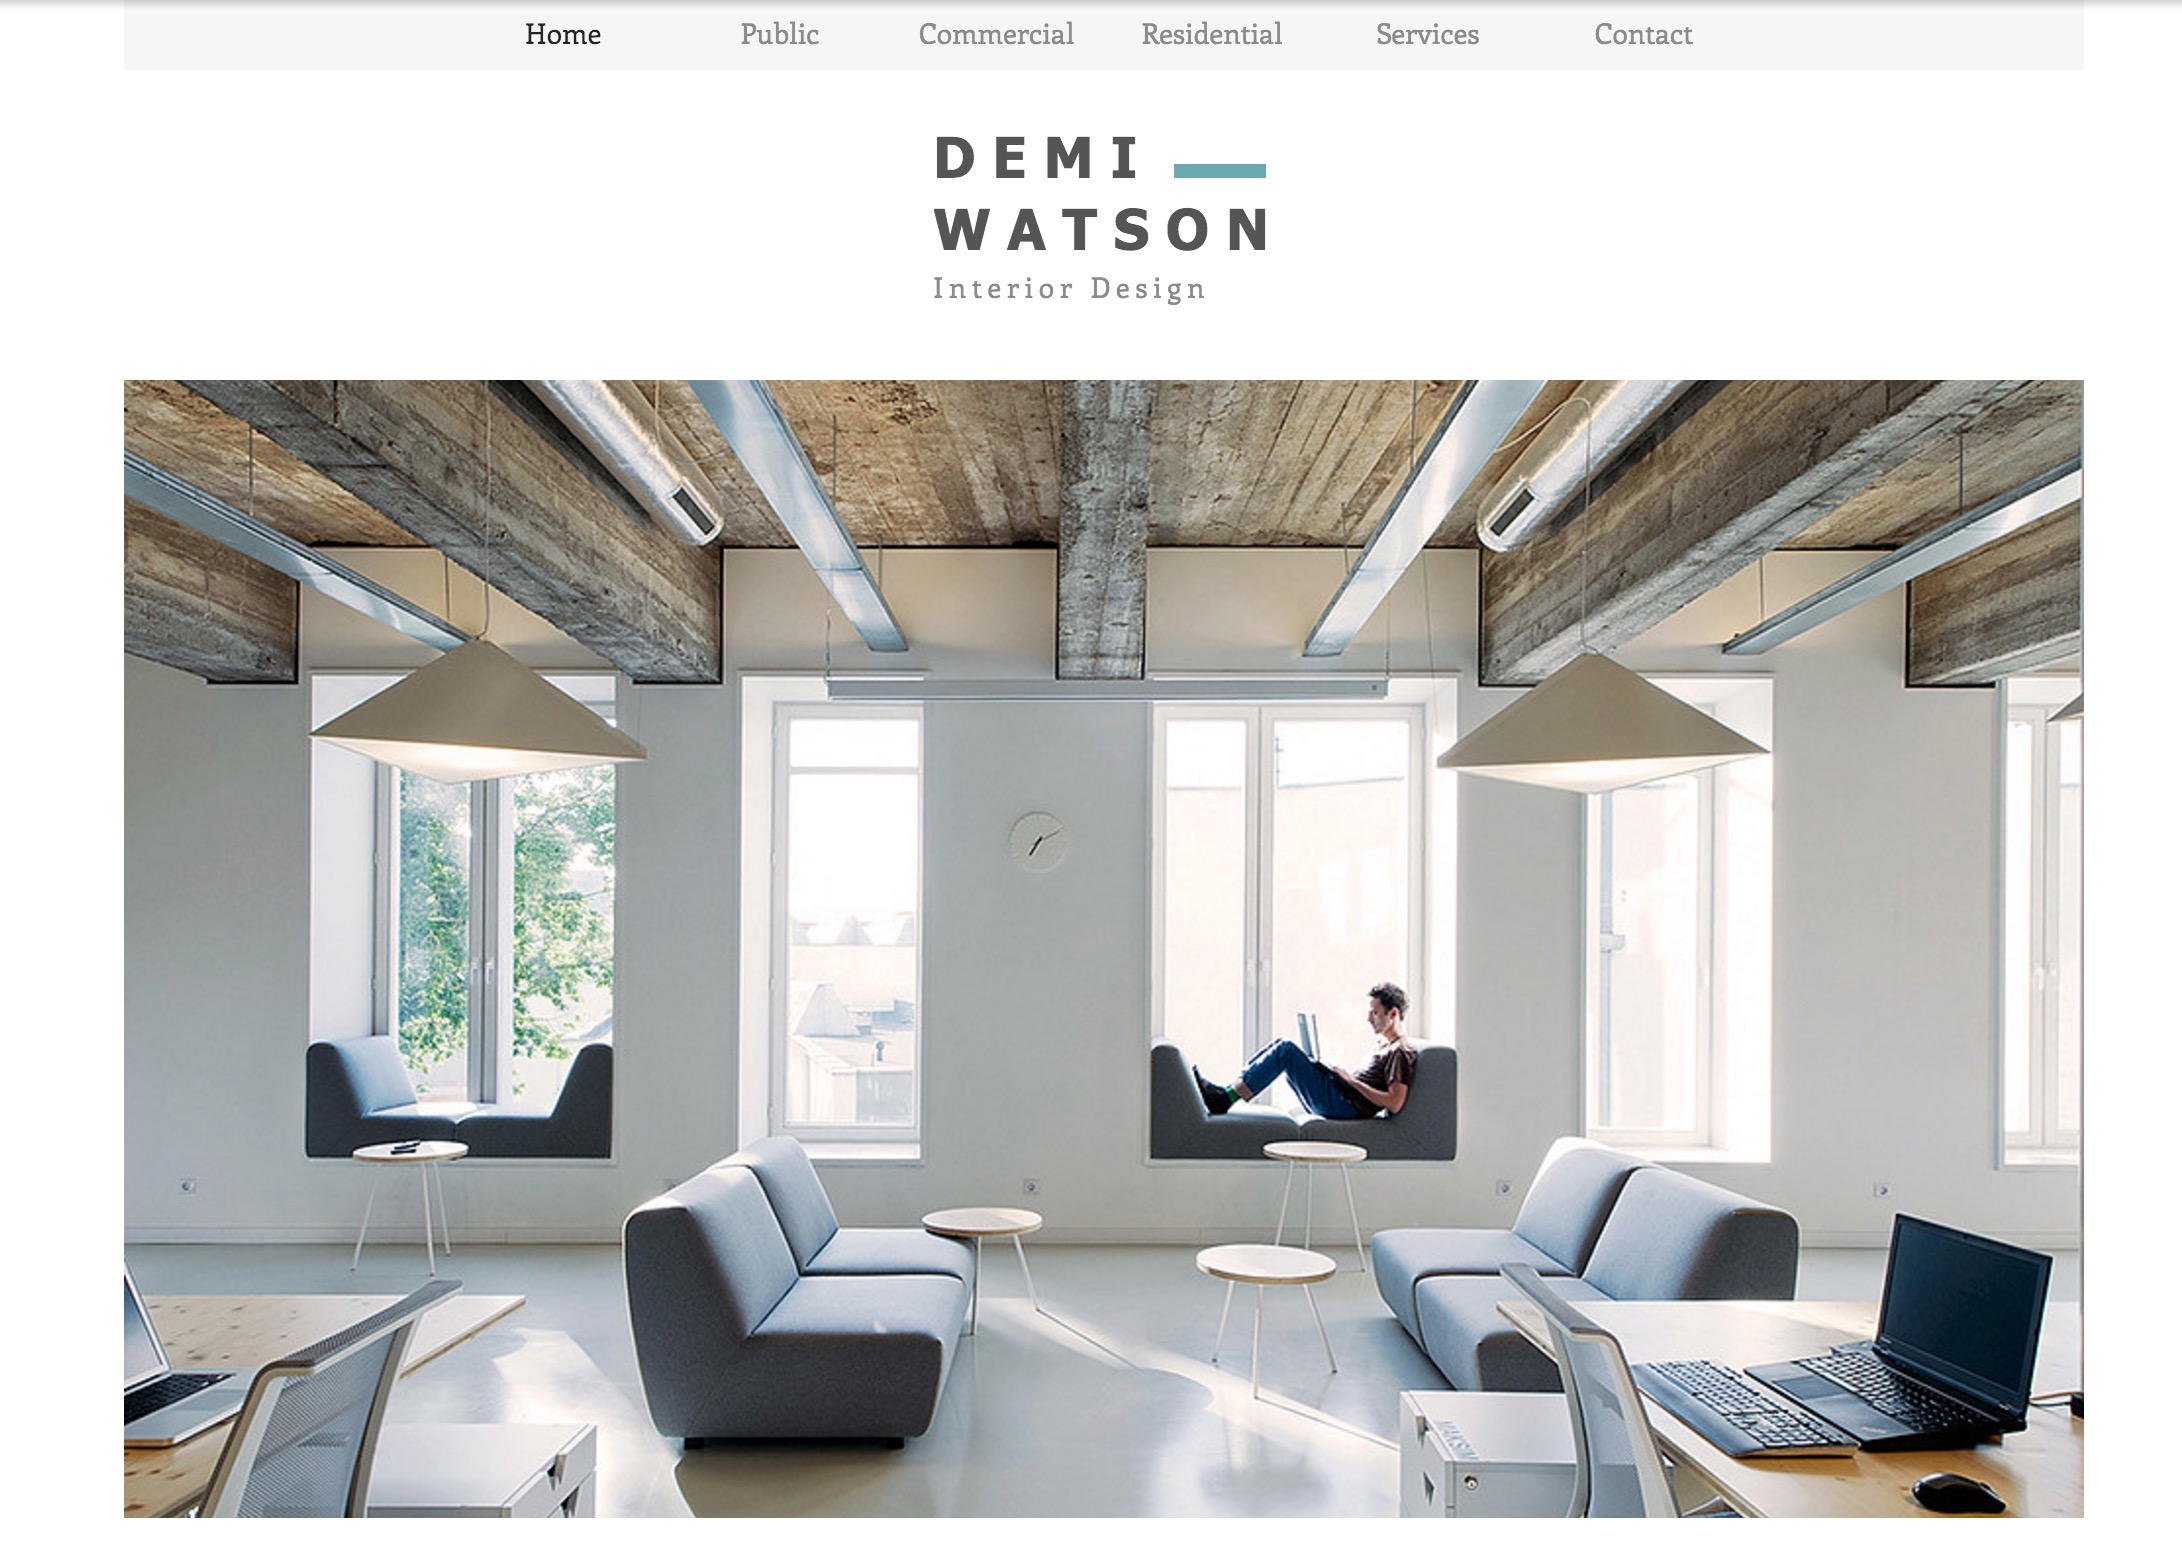 57 stunning wix website themes and templates for Best interior design sites